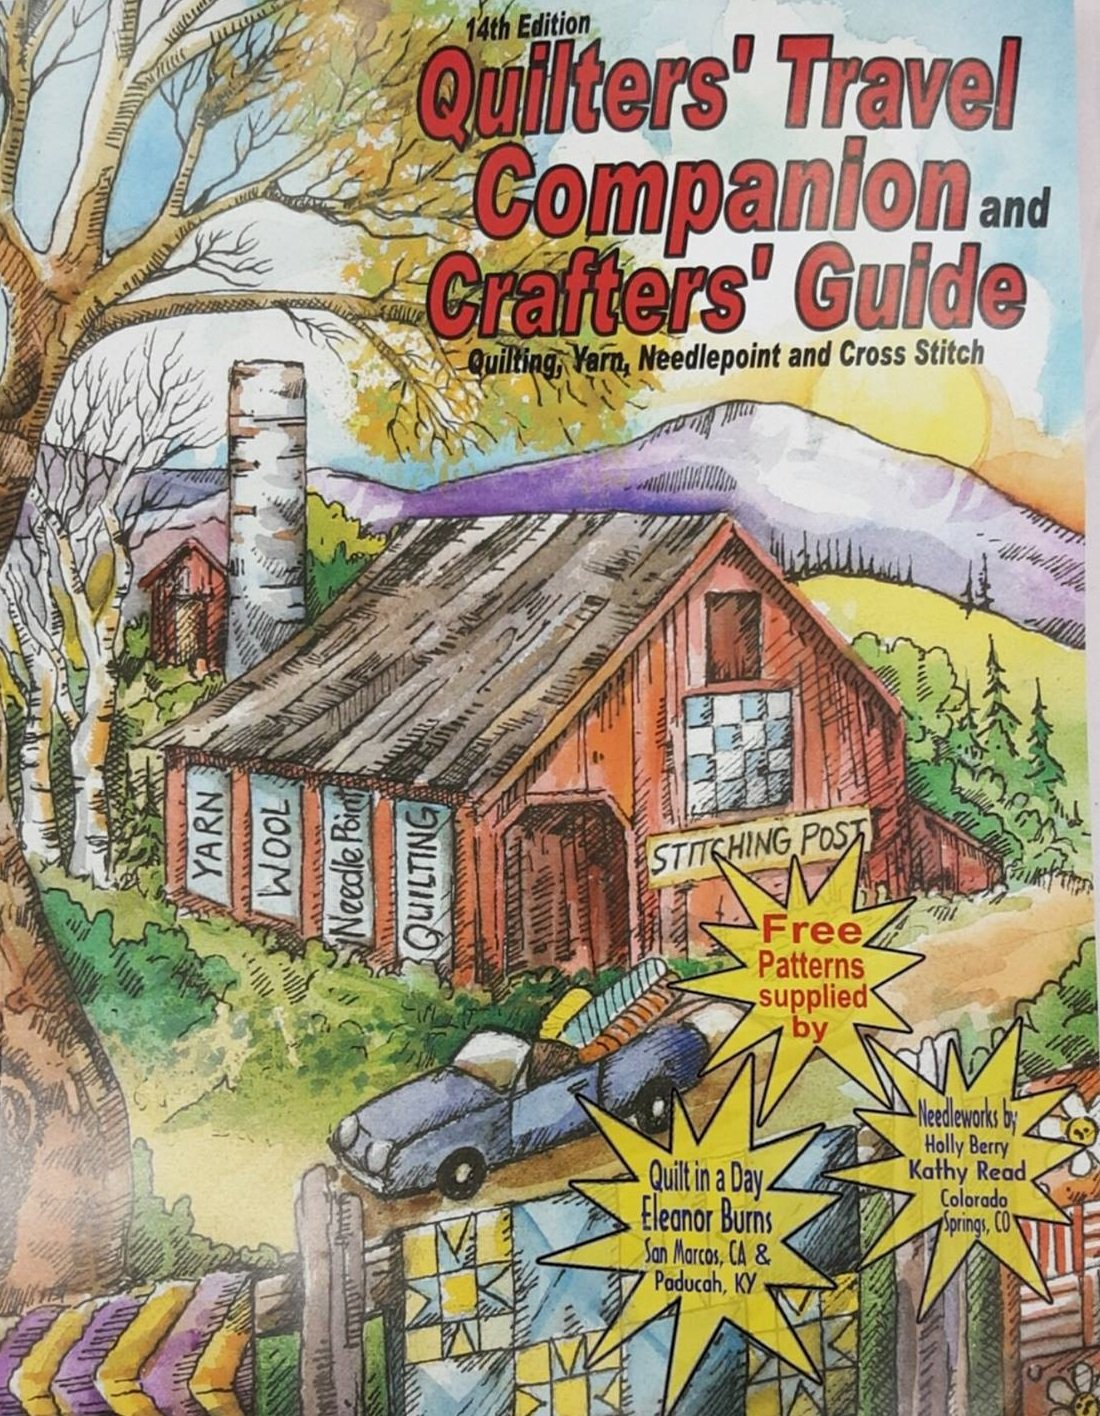 Quilter's Travel Companion, 14th Edition